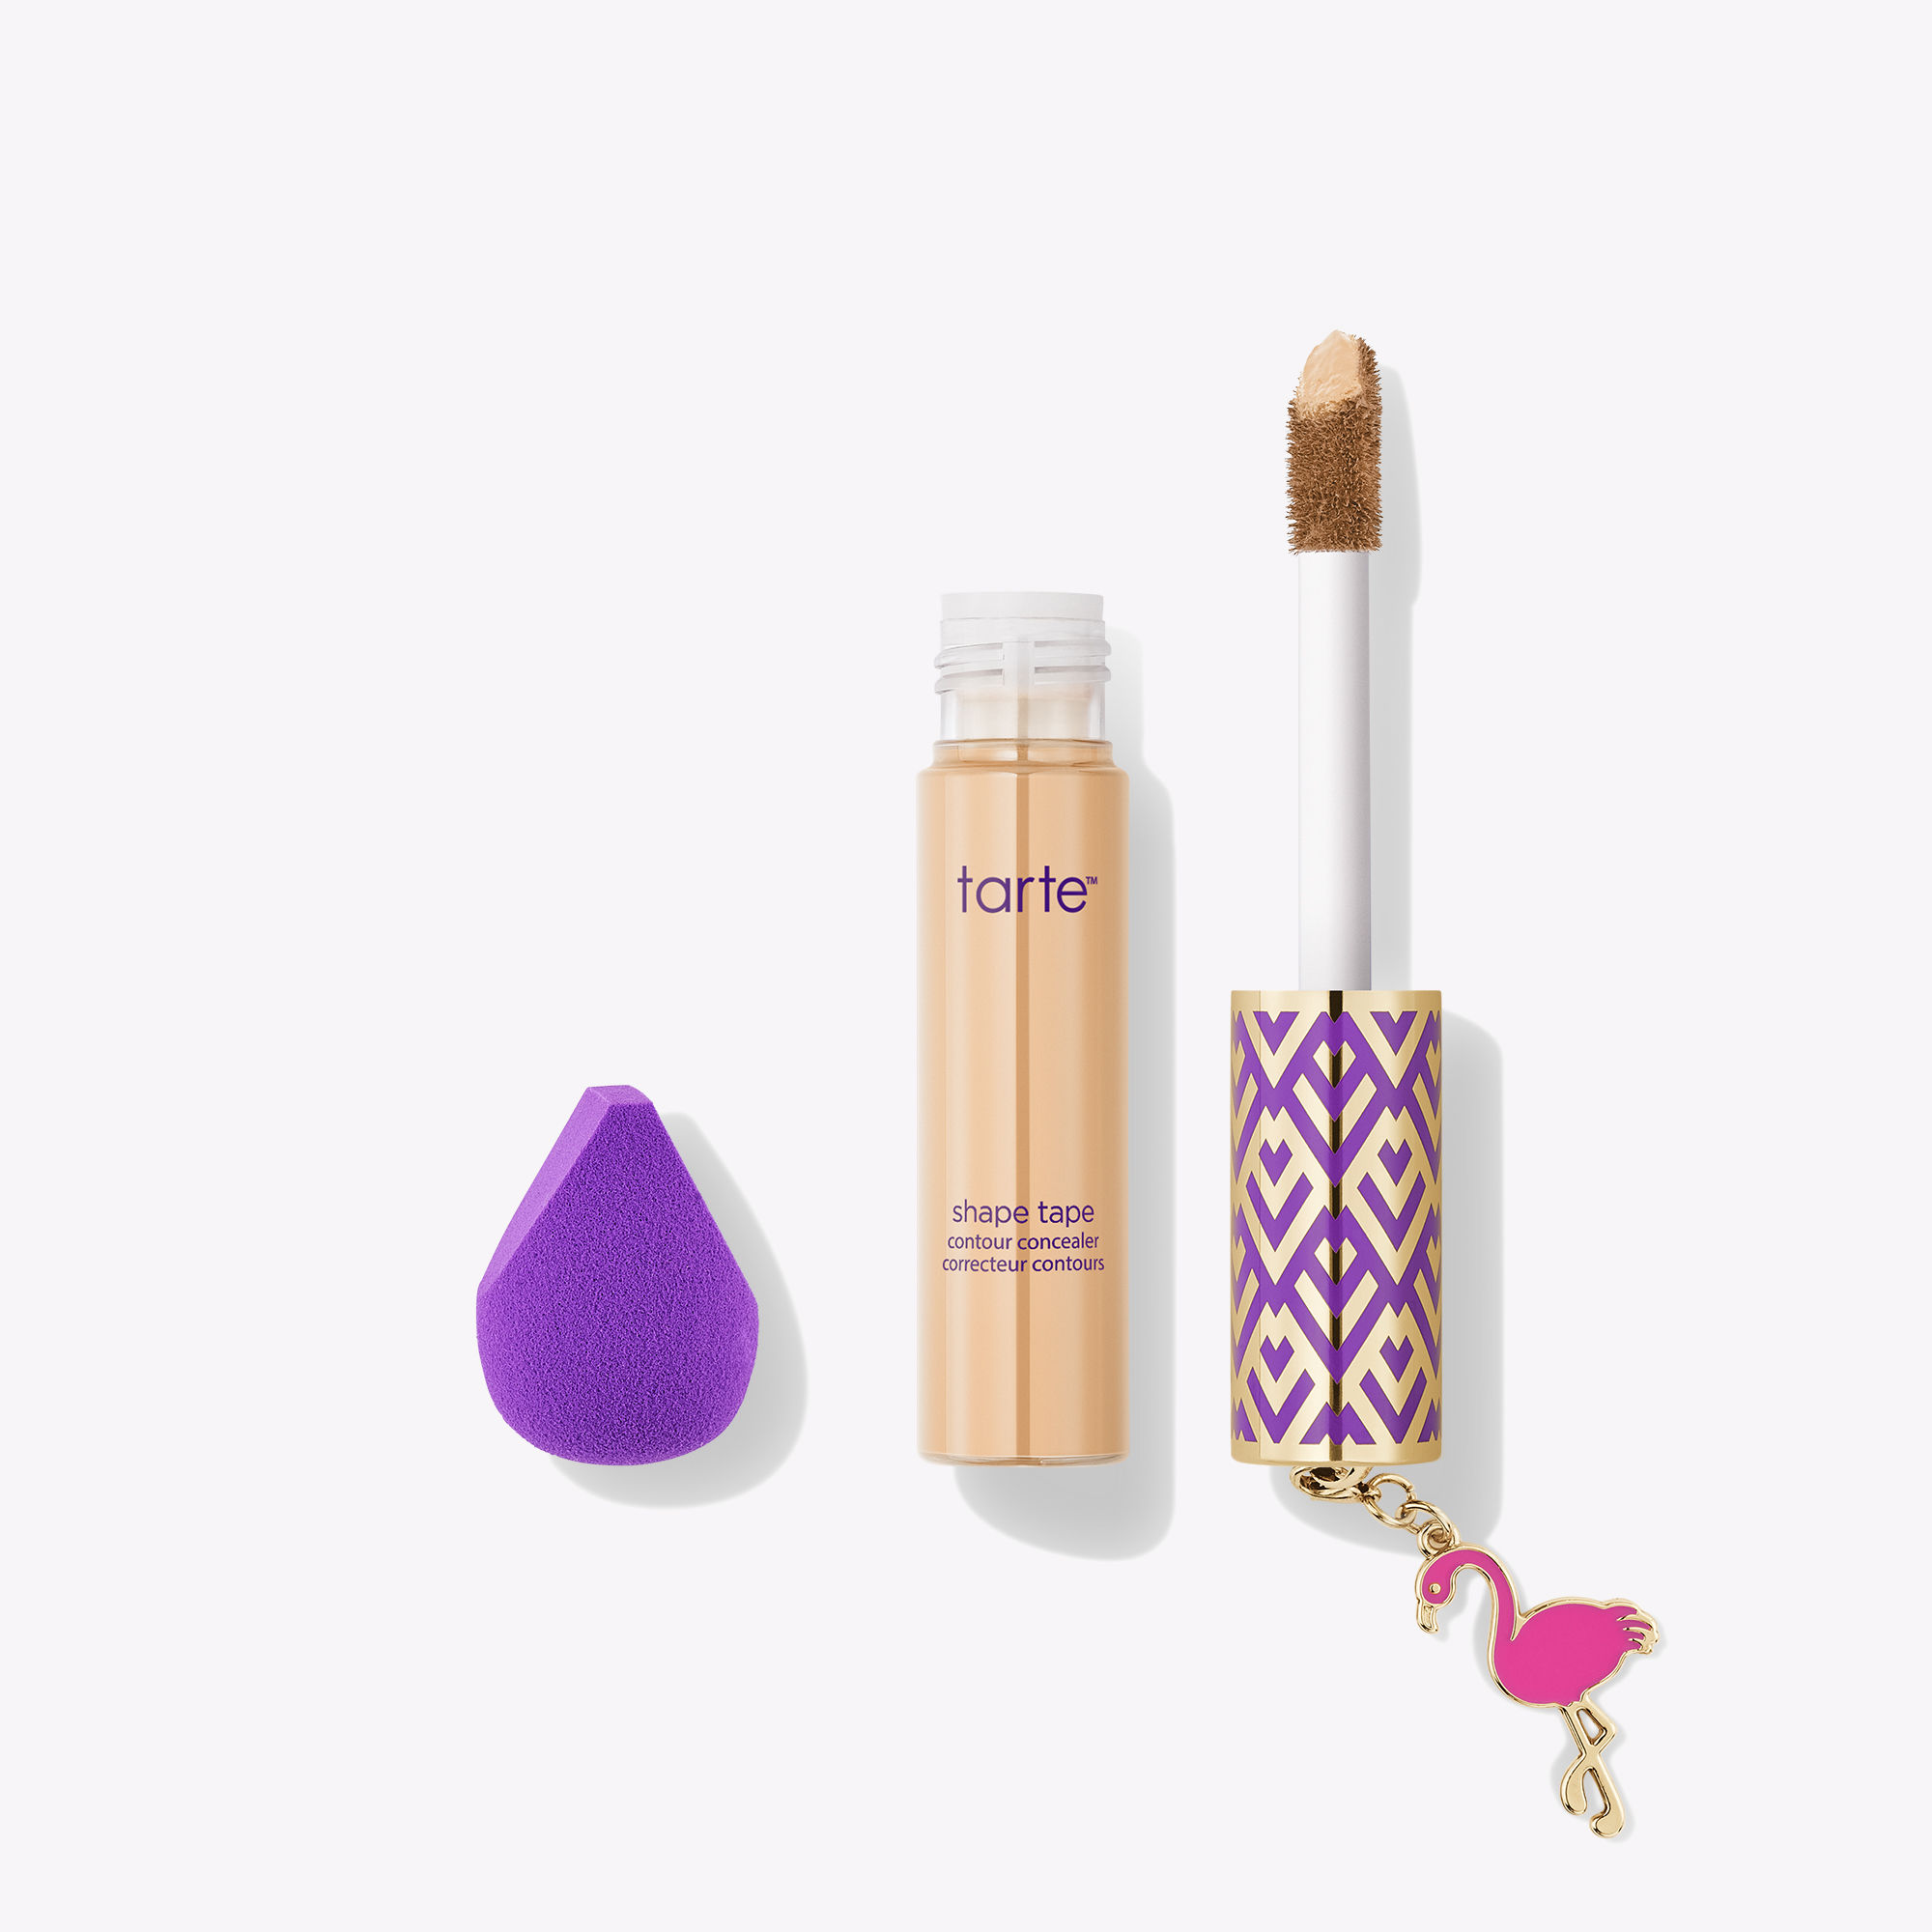 tarte™ shape tape concealer & mini sponge set